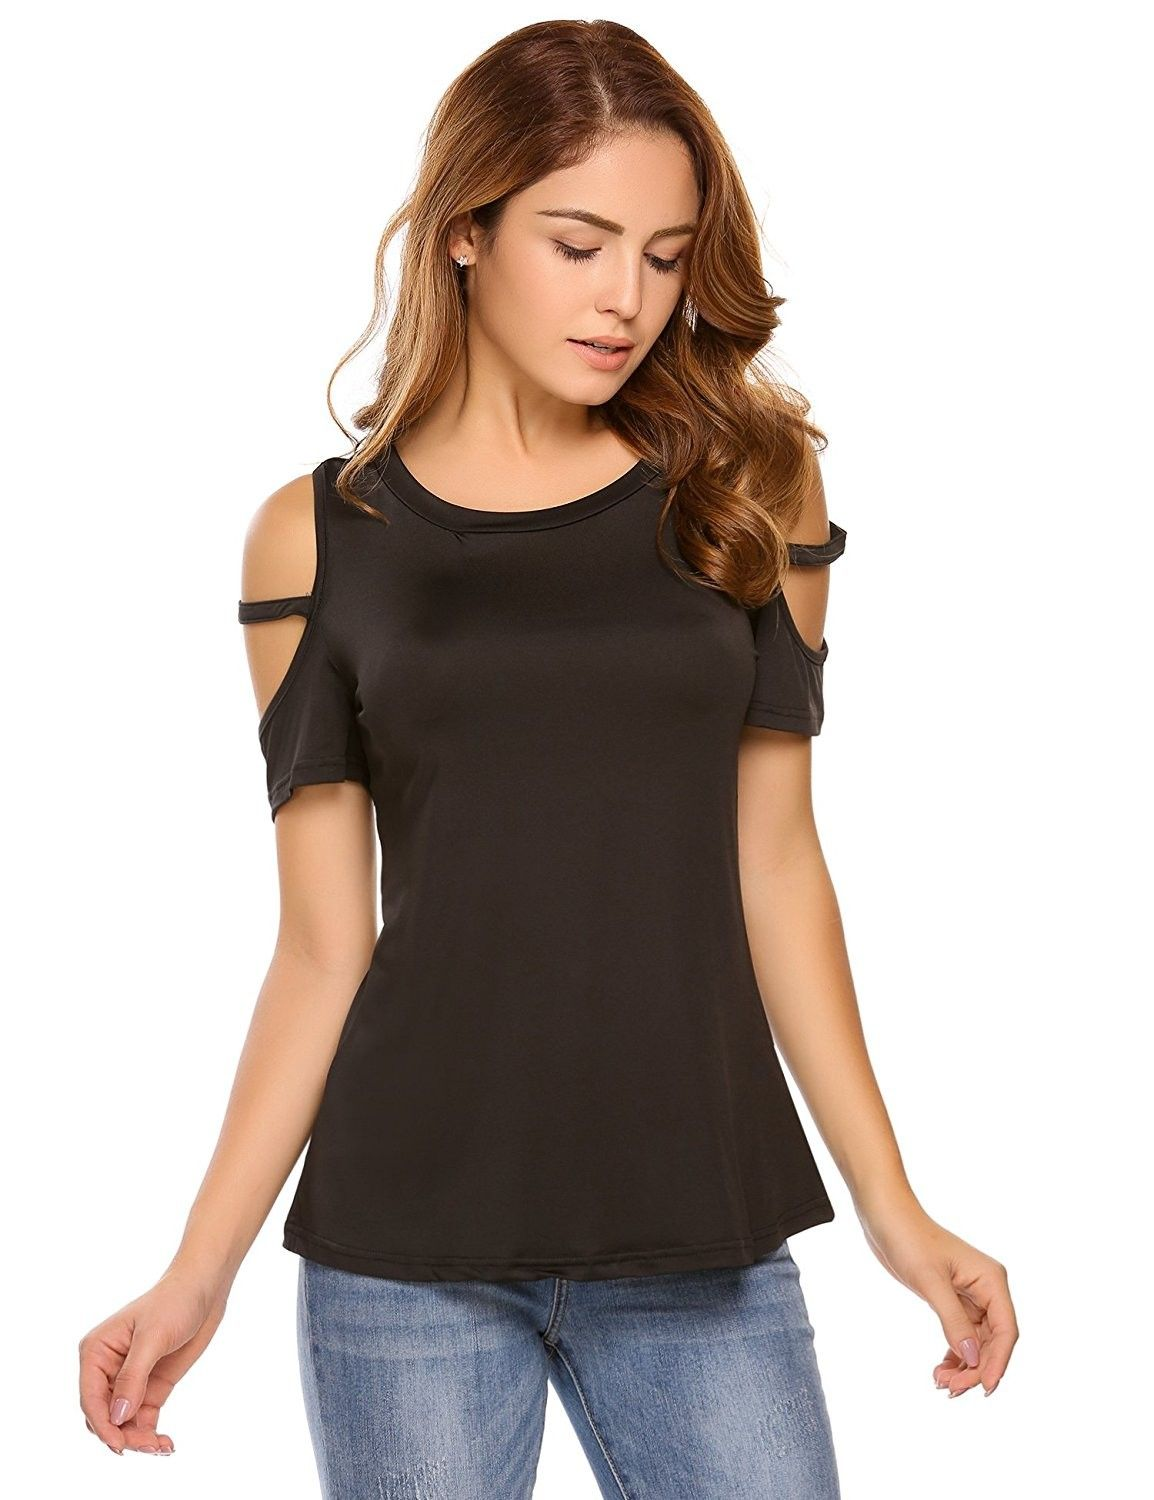 67911772111 Women's Clothing, Tops & Tees, Knits & Tees,Women's Casual Loose Cut Out  Cold Shoulder T-Shirt Short Sleeve Tops - Black - C2184RHTRCE #KnitsTees # Women's ...